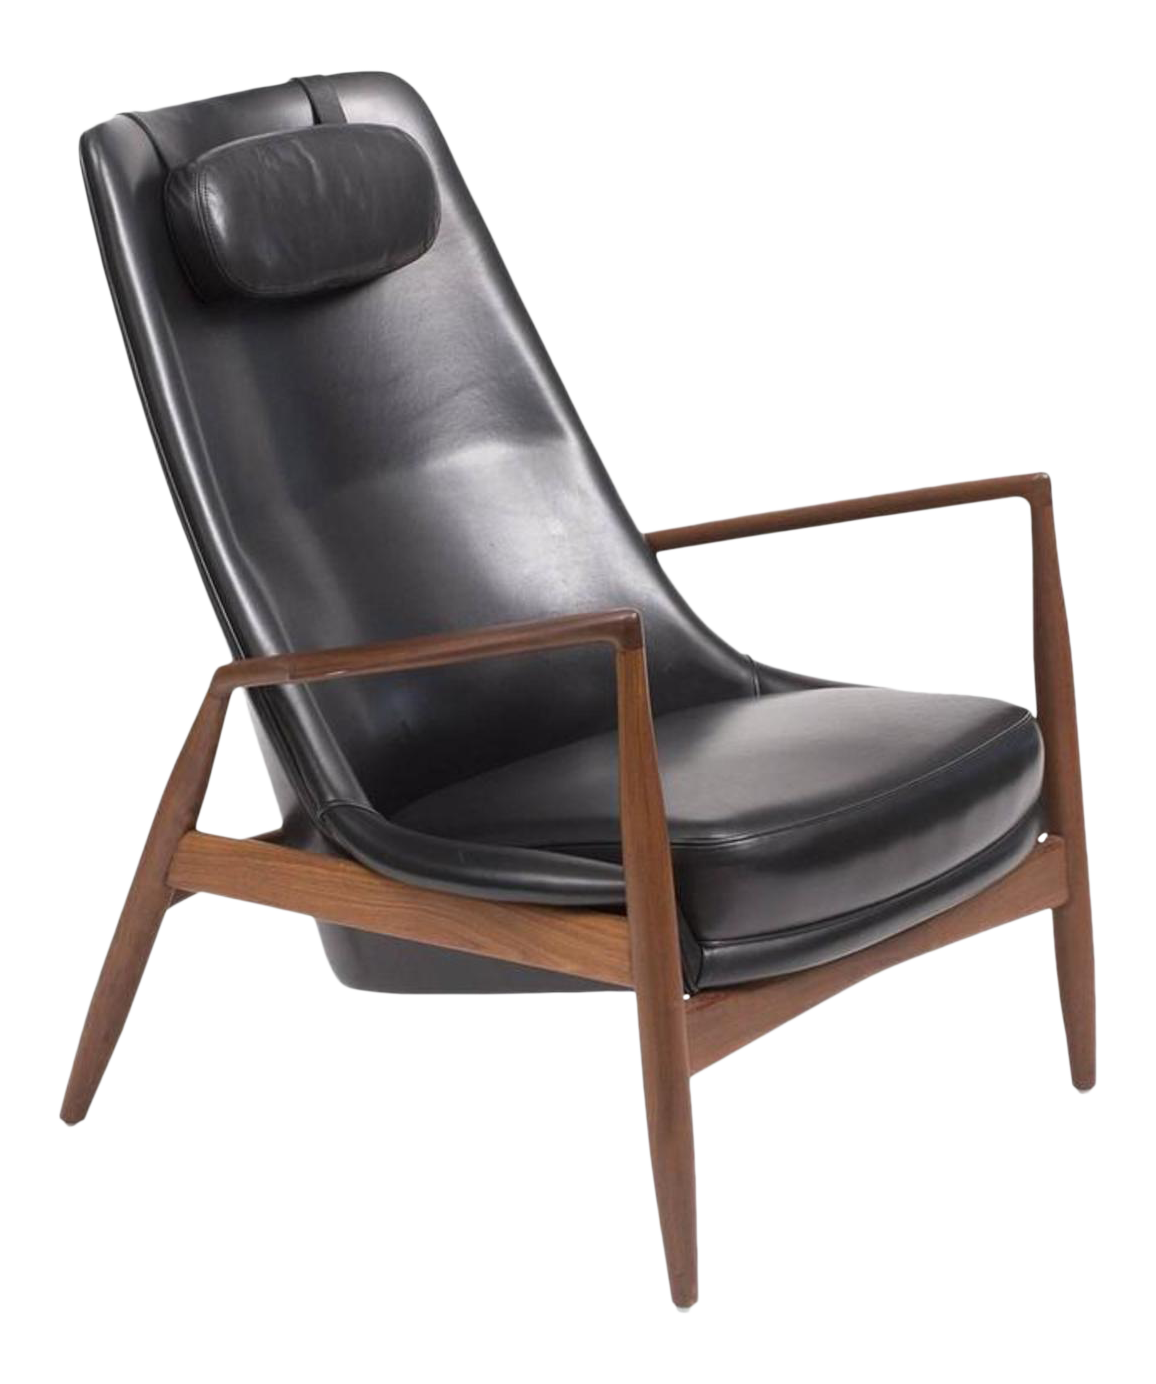 Bon Ib Kofod Larsen High Back Seal Chair In Teak And Black Leather For OPE,